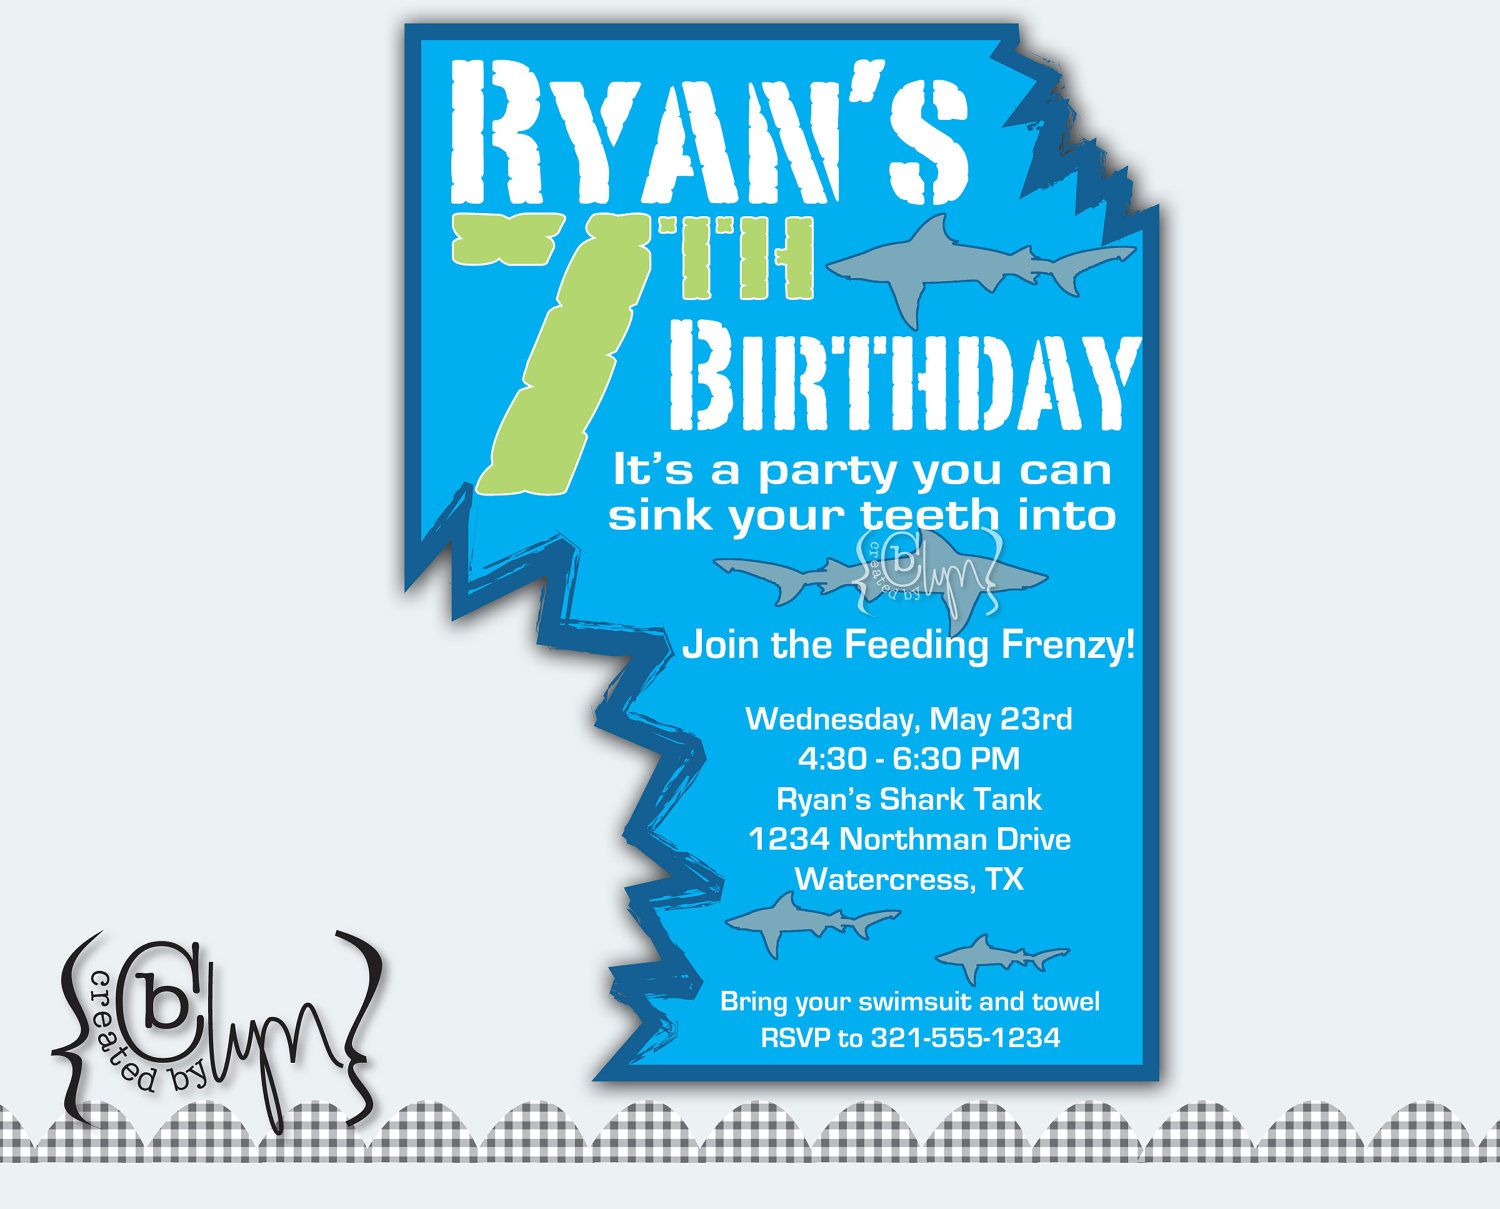 Shark Attack Birthday Party invitation with two shark bites cutout